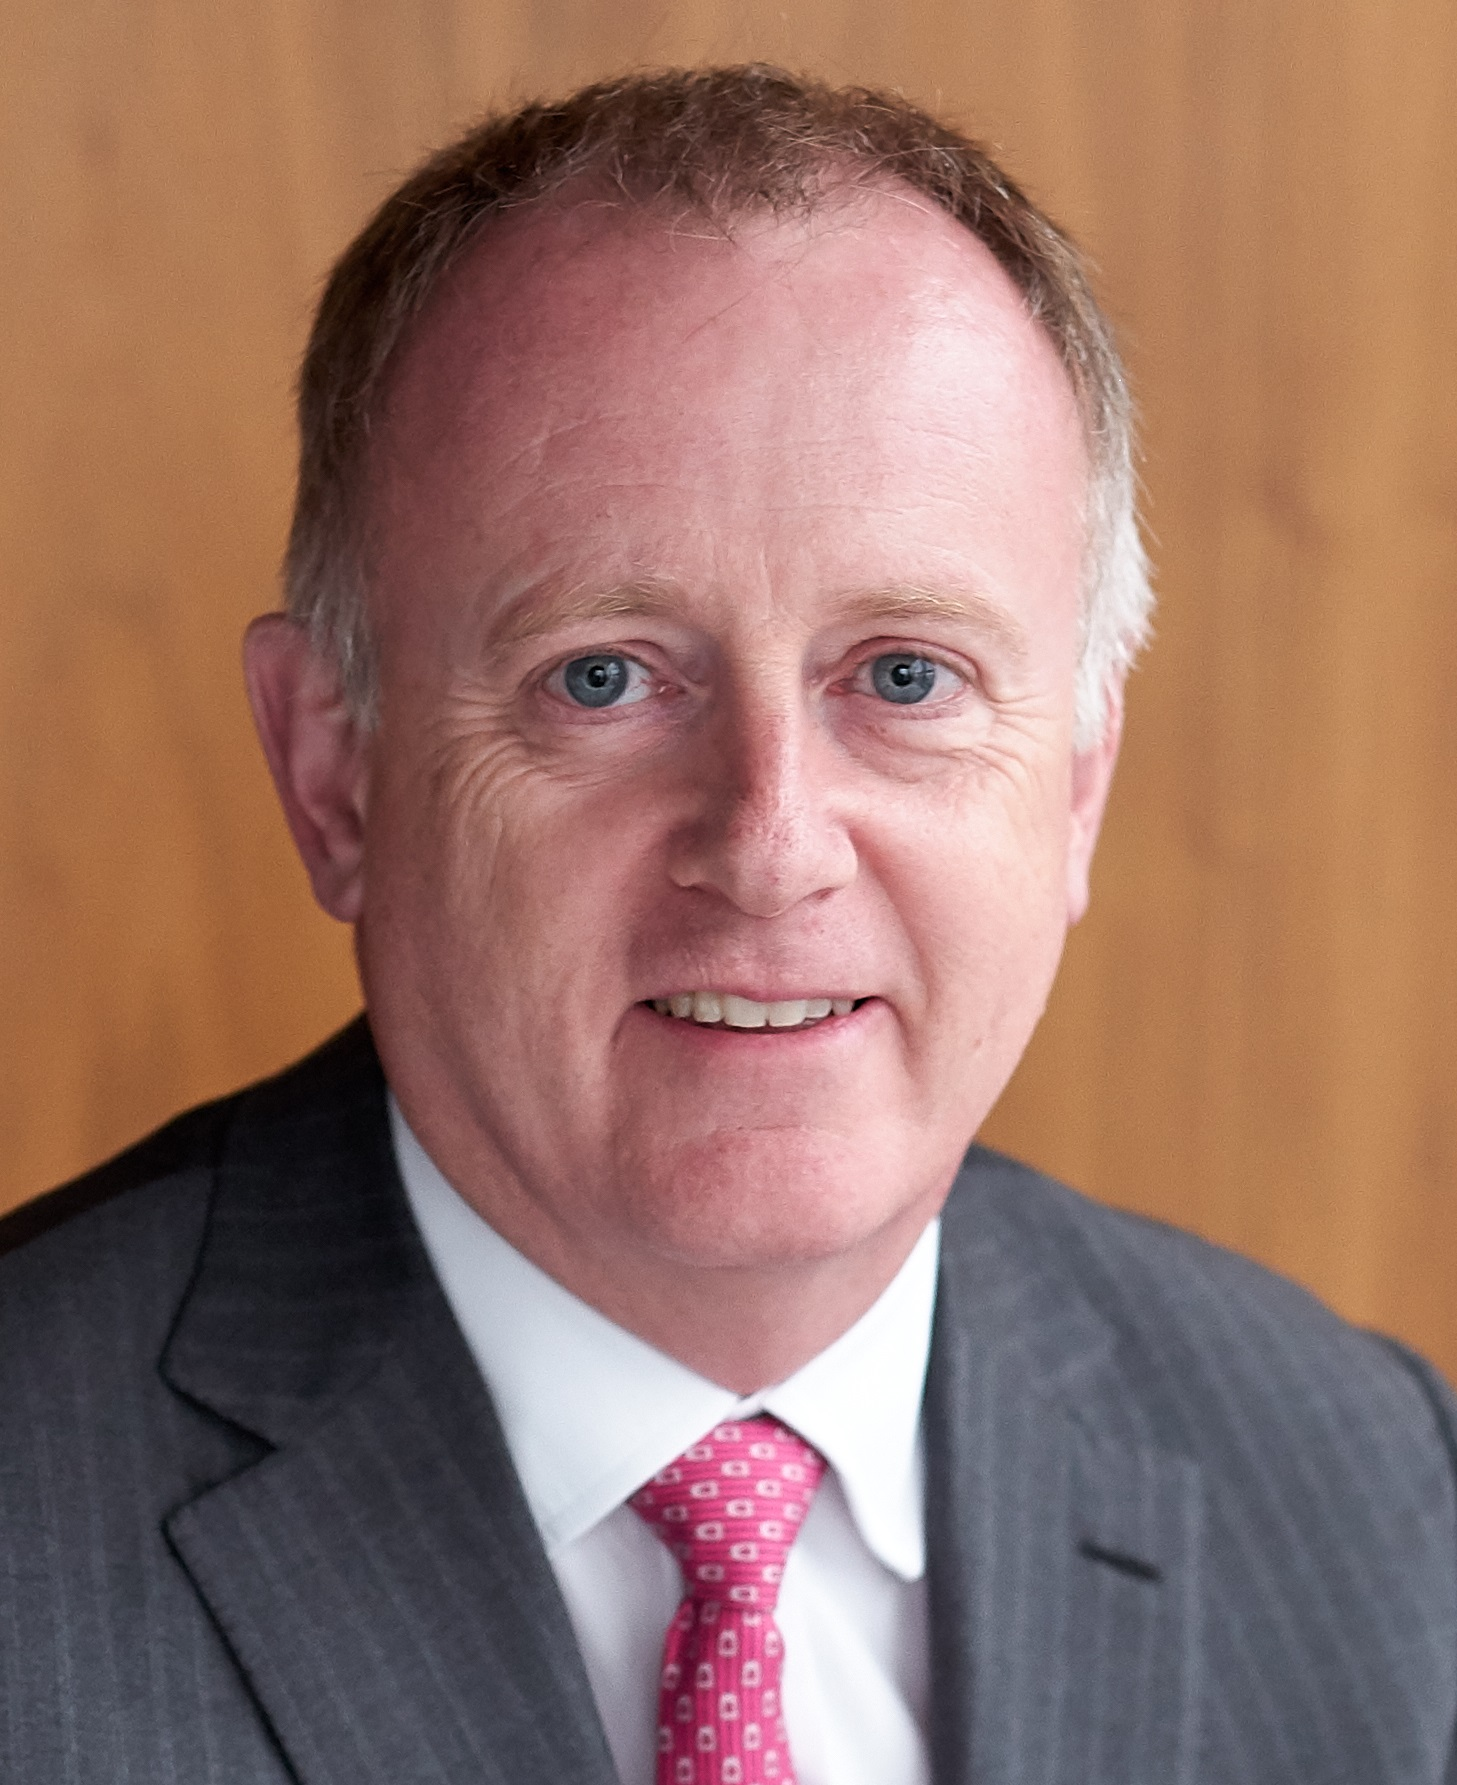 John Neal, Lloyd's of London